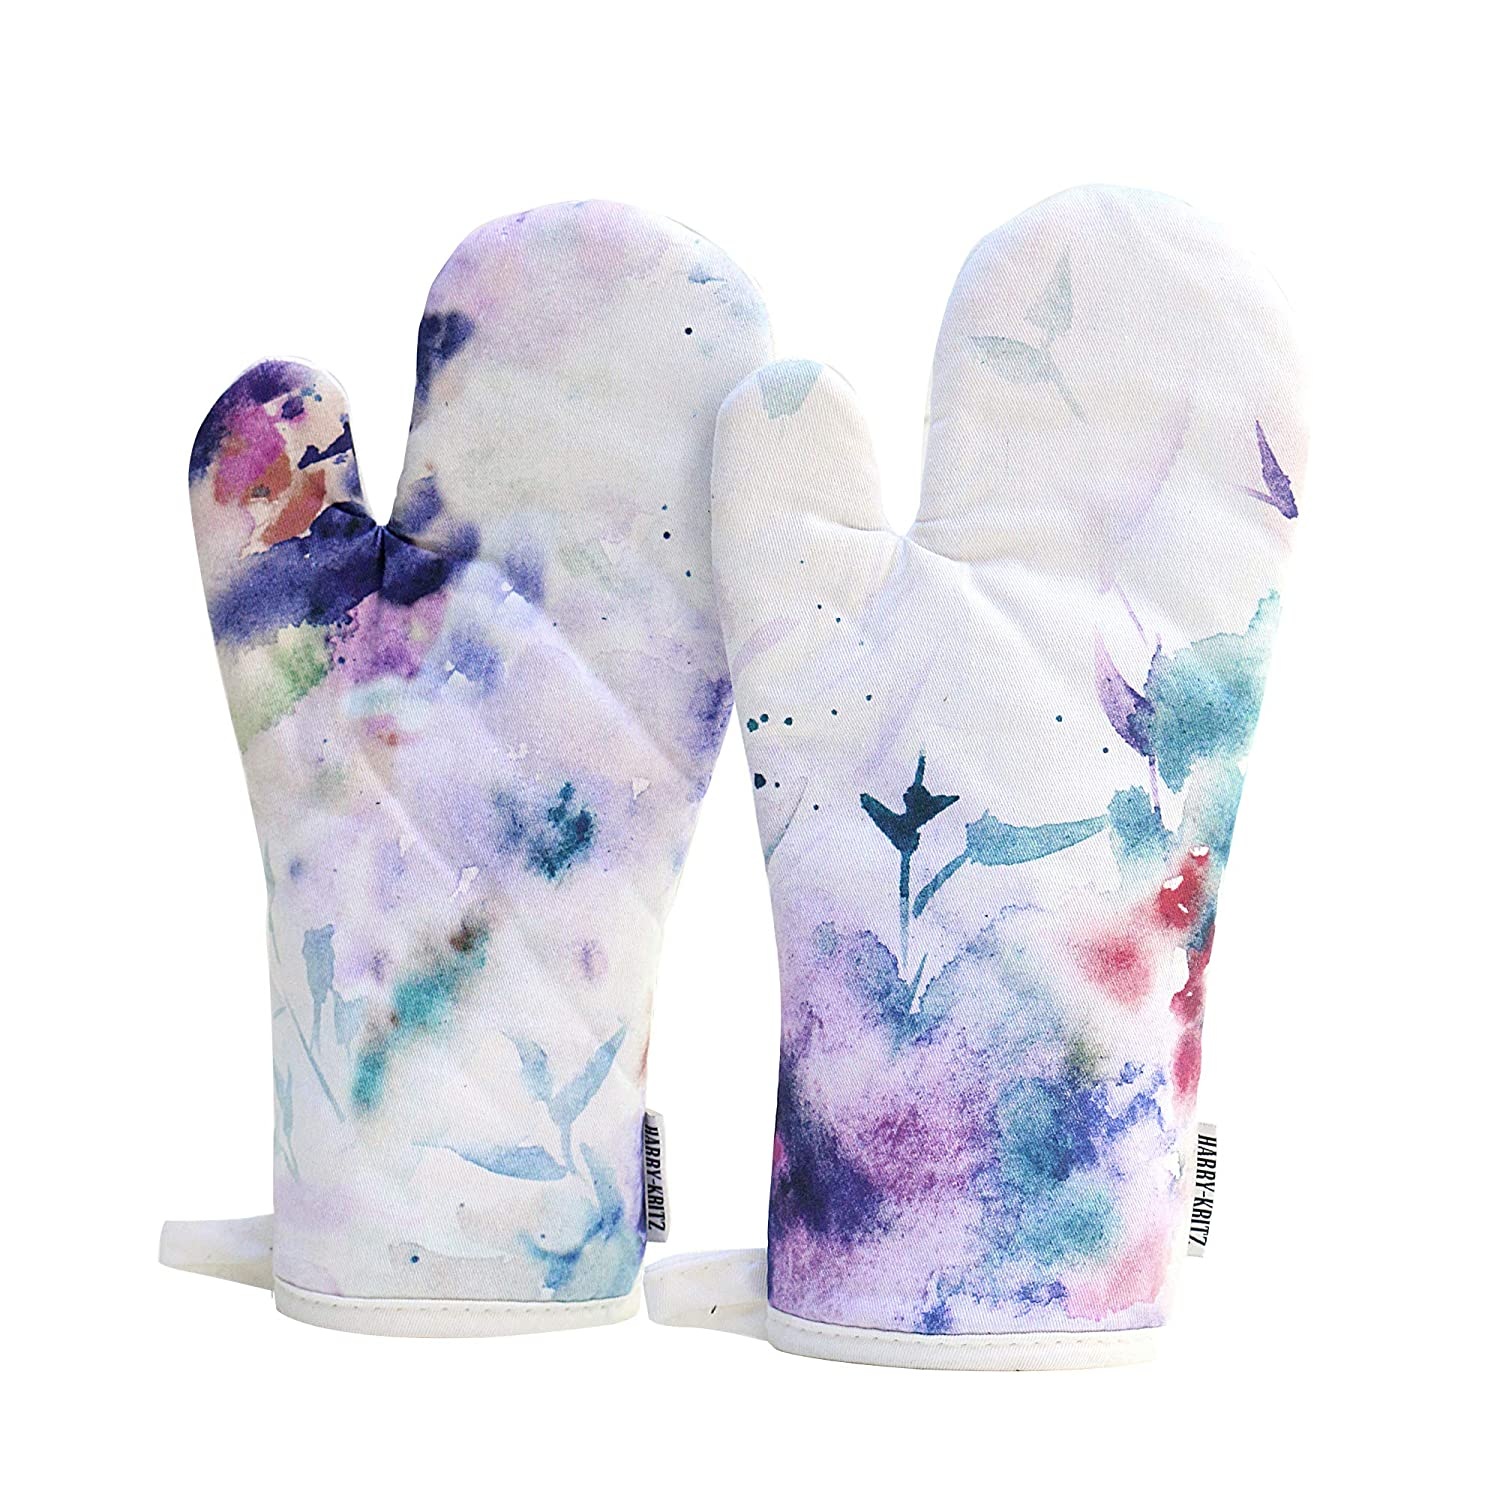 HARRY KRITZ - Color Stain 100% Cotton Set of 2 Oven Mitts (13 x 6.5 inches) Watercolor Spatter and Smear Design.